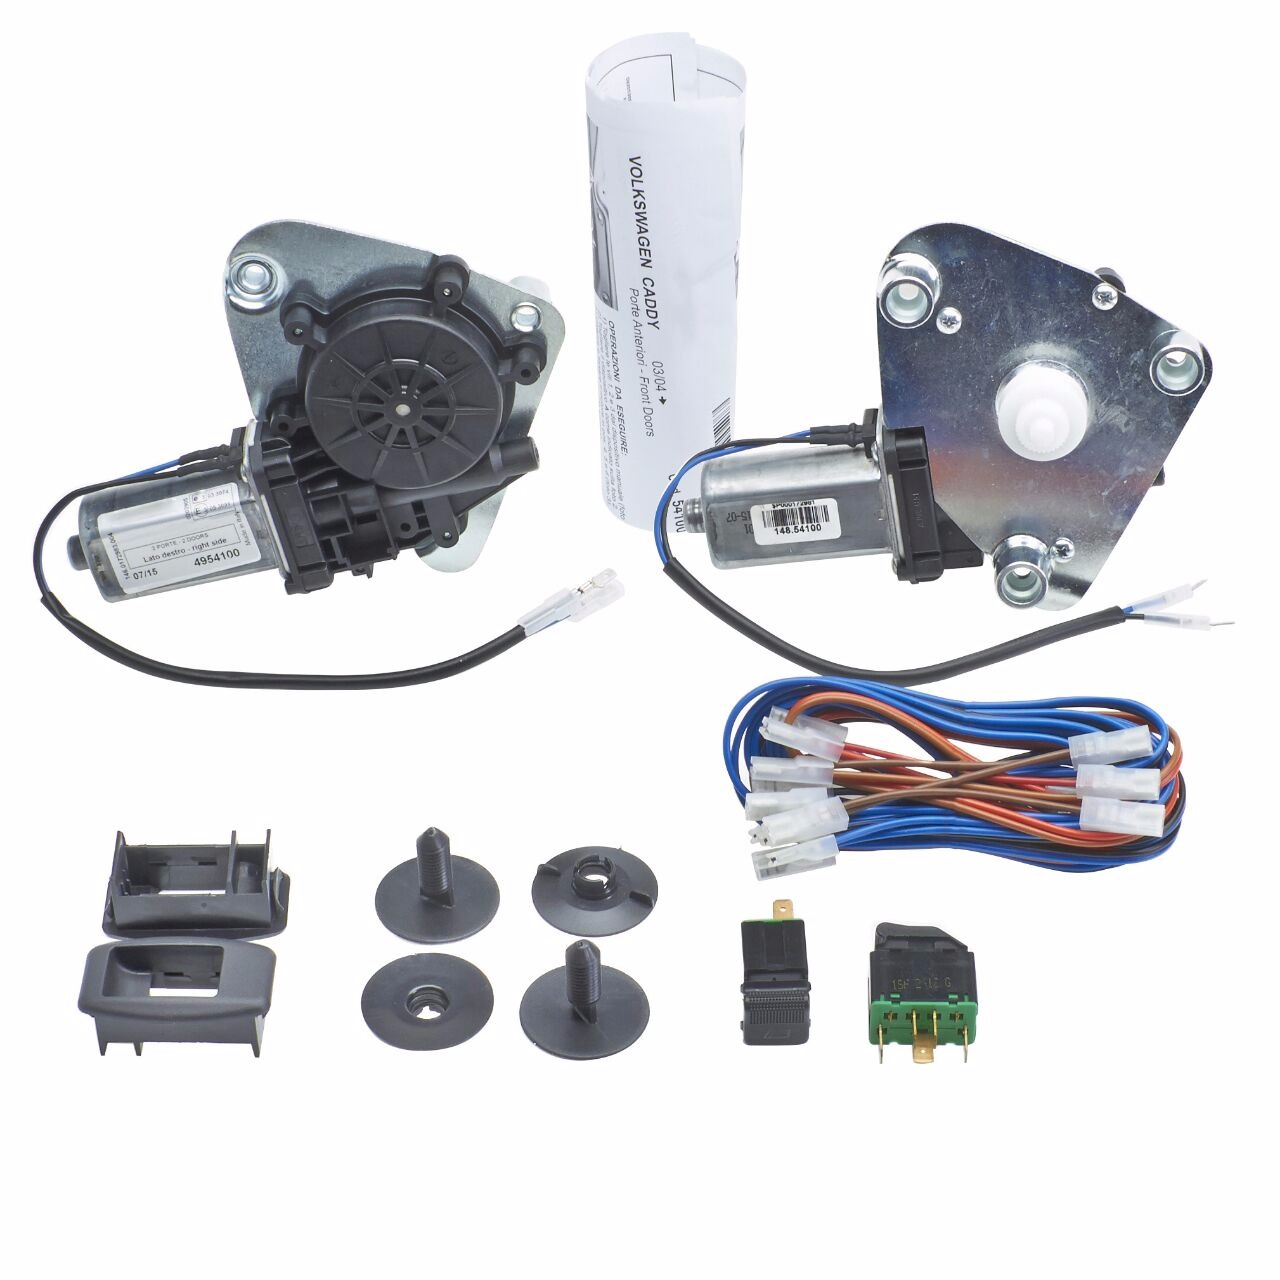 Electric Windows For Vw Polo Vivo And Dedicated Front Window Kit Volkswagen 9n Wiring Diagram